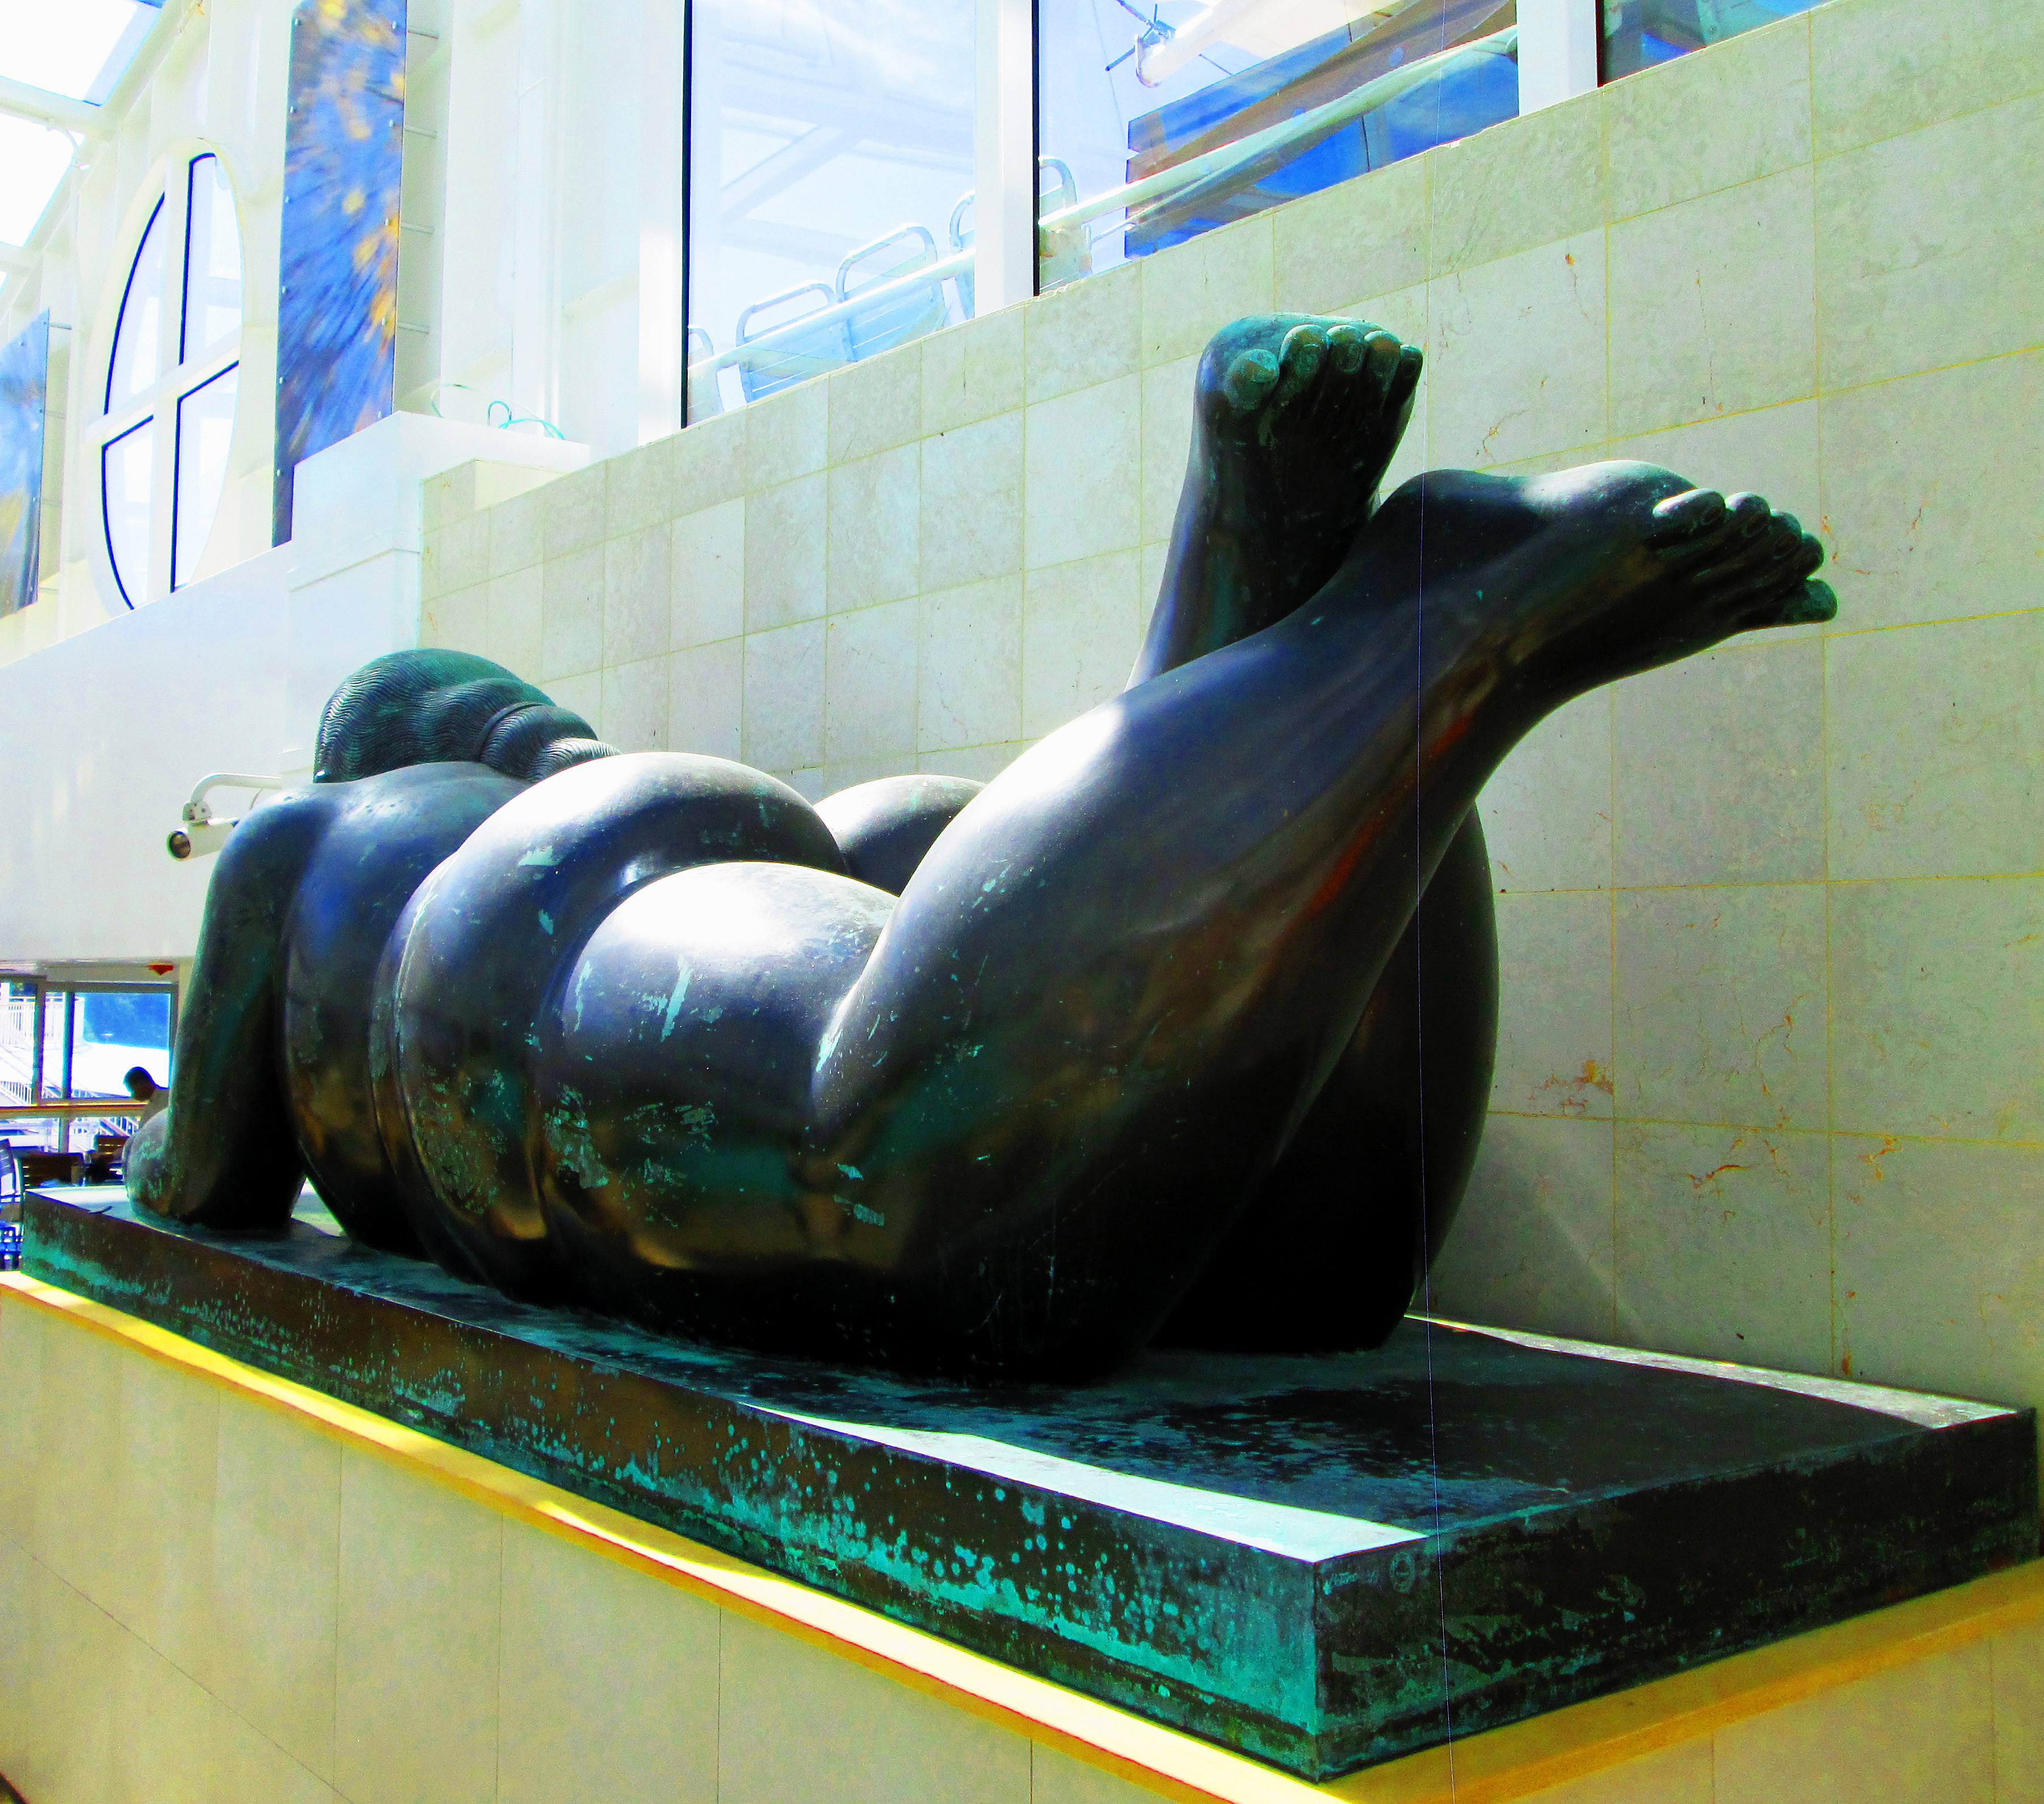 Rear View Of Voluptuous Spa Statue On Cruise Ship